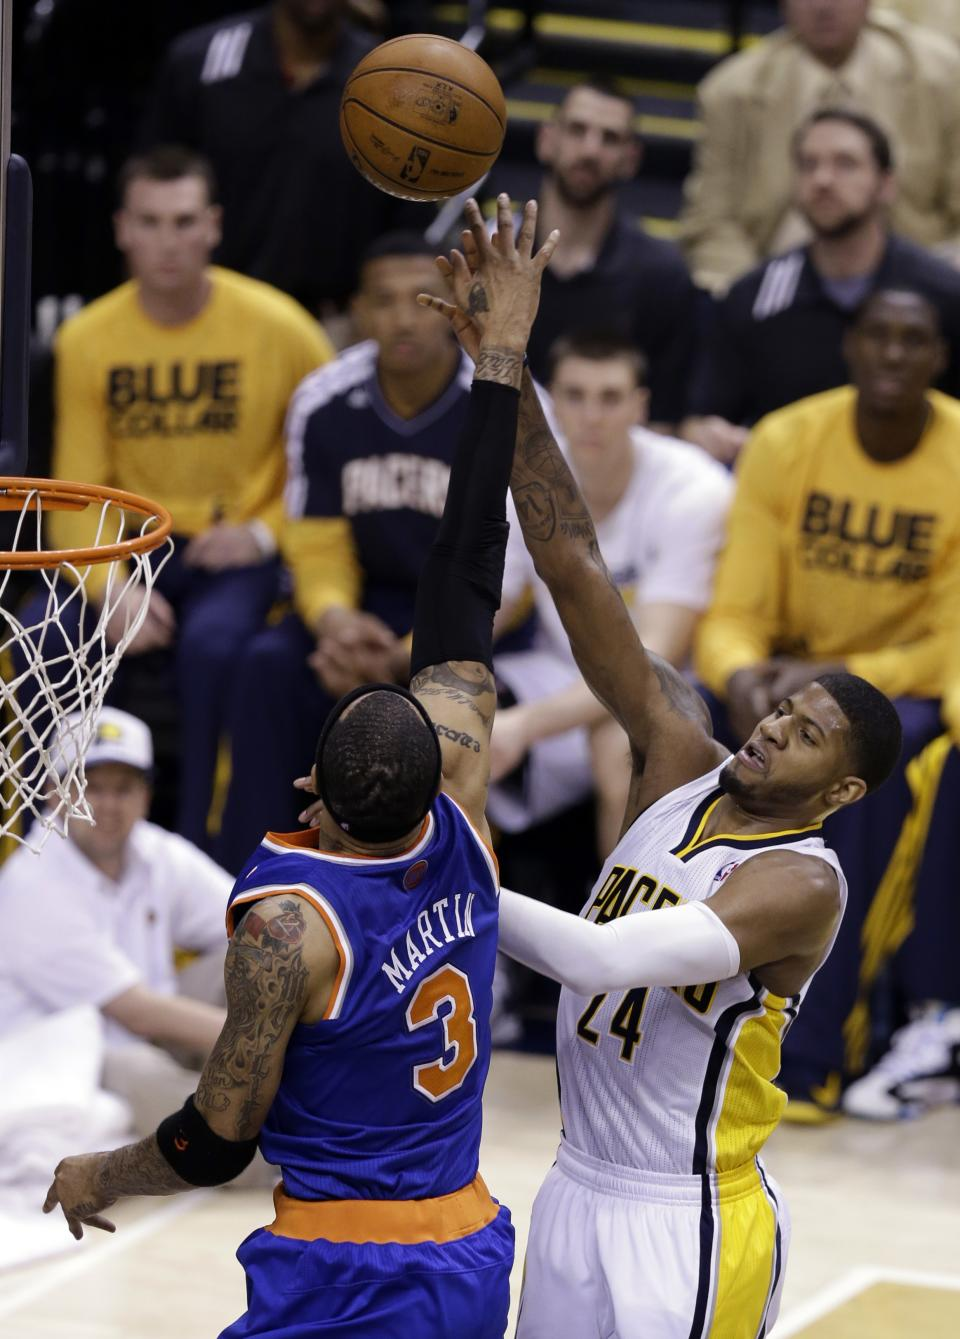 Indiana Pacers forward Paul George, right, shoots over New York Knicks forward Kenyon Martin during the first half of Game 4 of the Eastern Conference semifinal NBA basketball playoff series, in Indianapolis on Tuesday, May 14, 2013. (AP Photo/Michael Conroy)